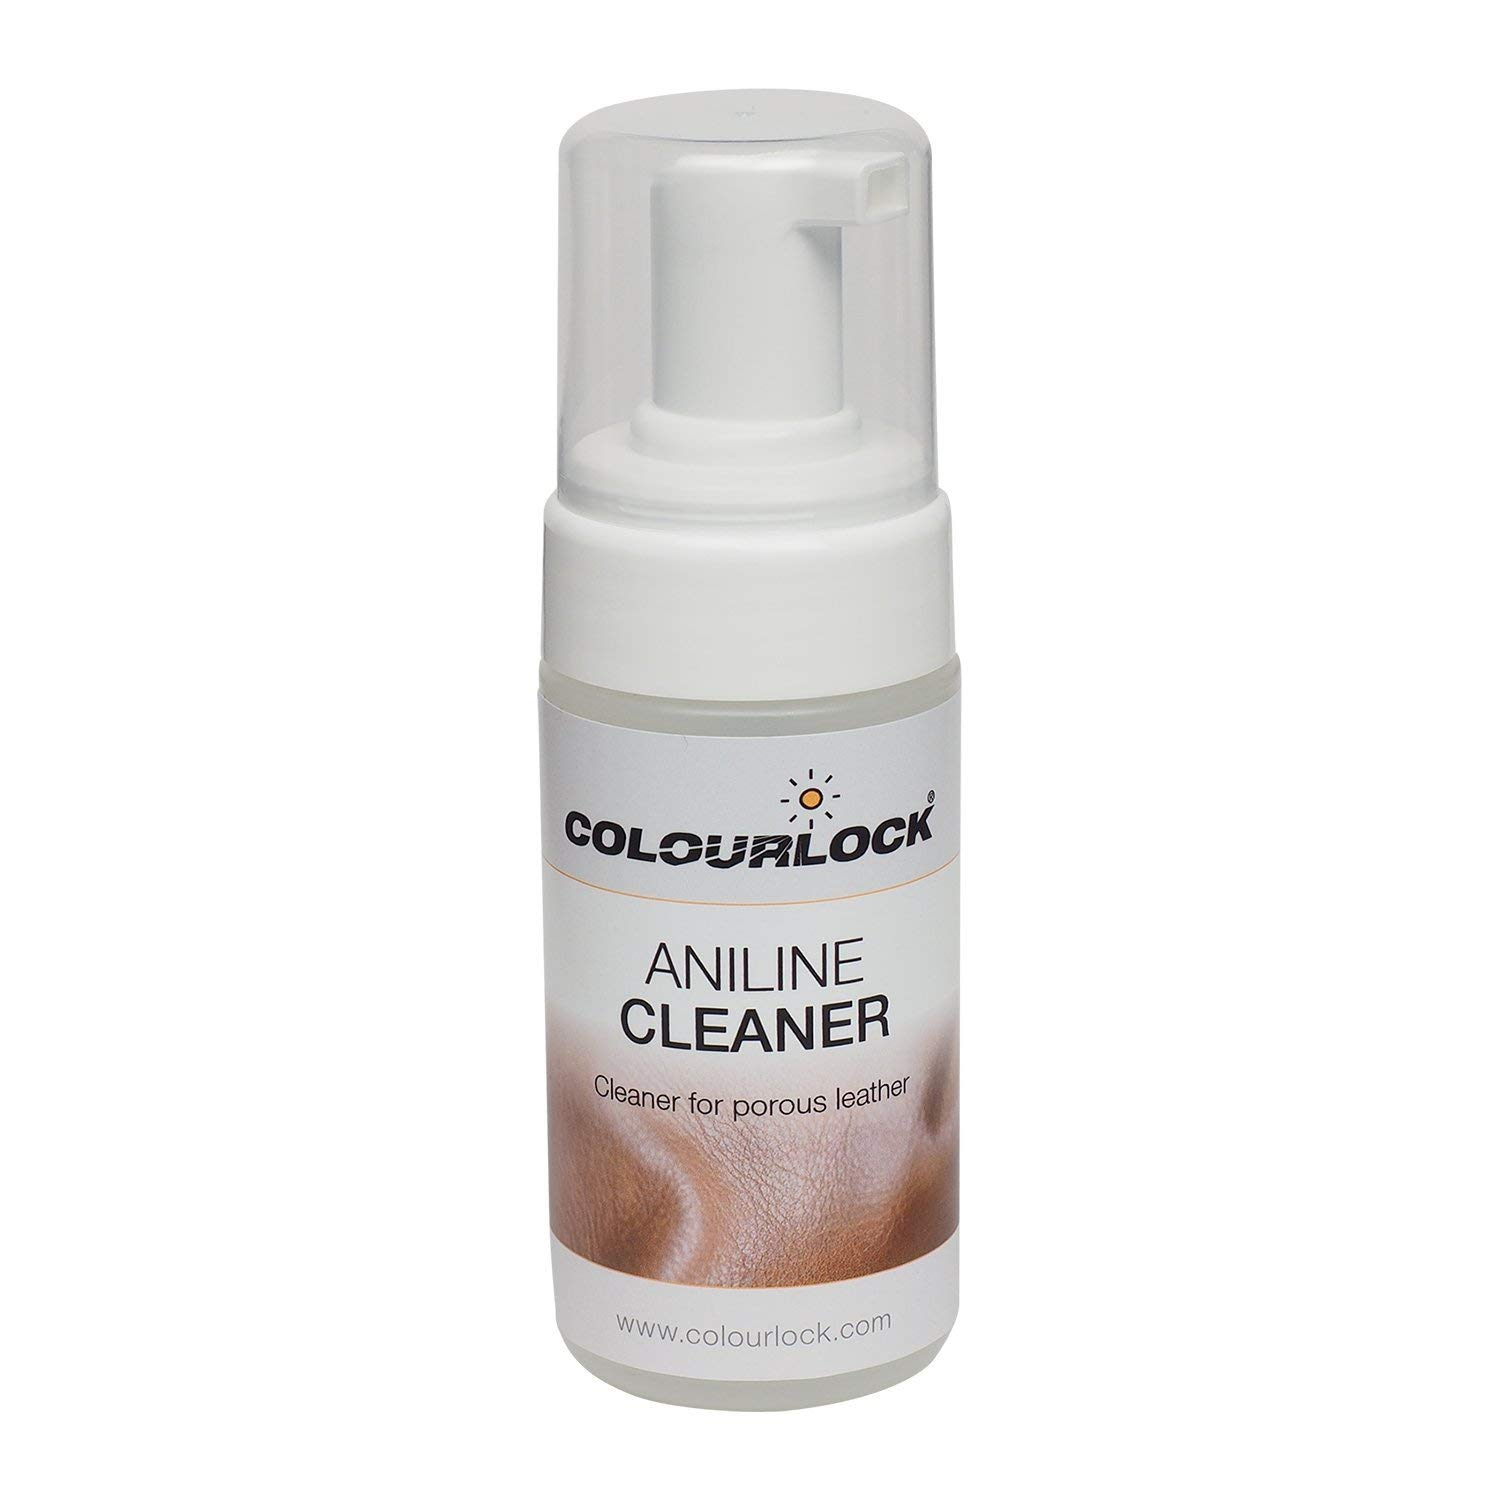 COLOURLOCK Aniline Cleaner | For furniture, apparel, bags and accessories | 125 ml